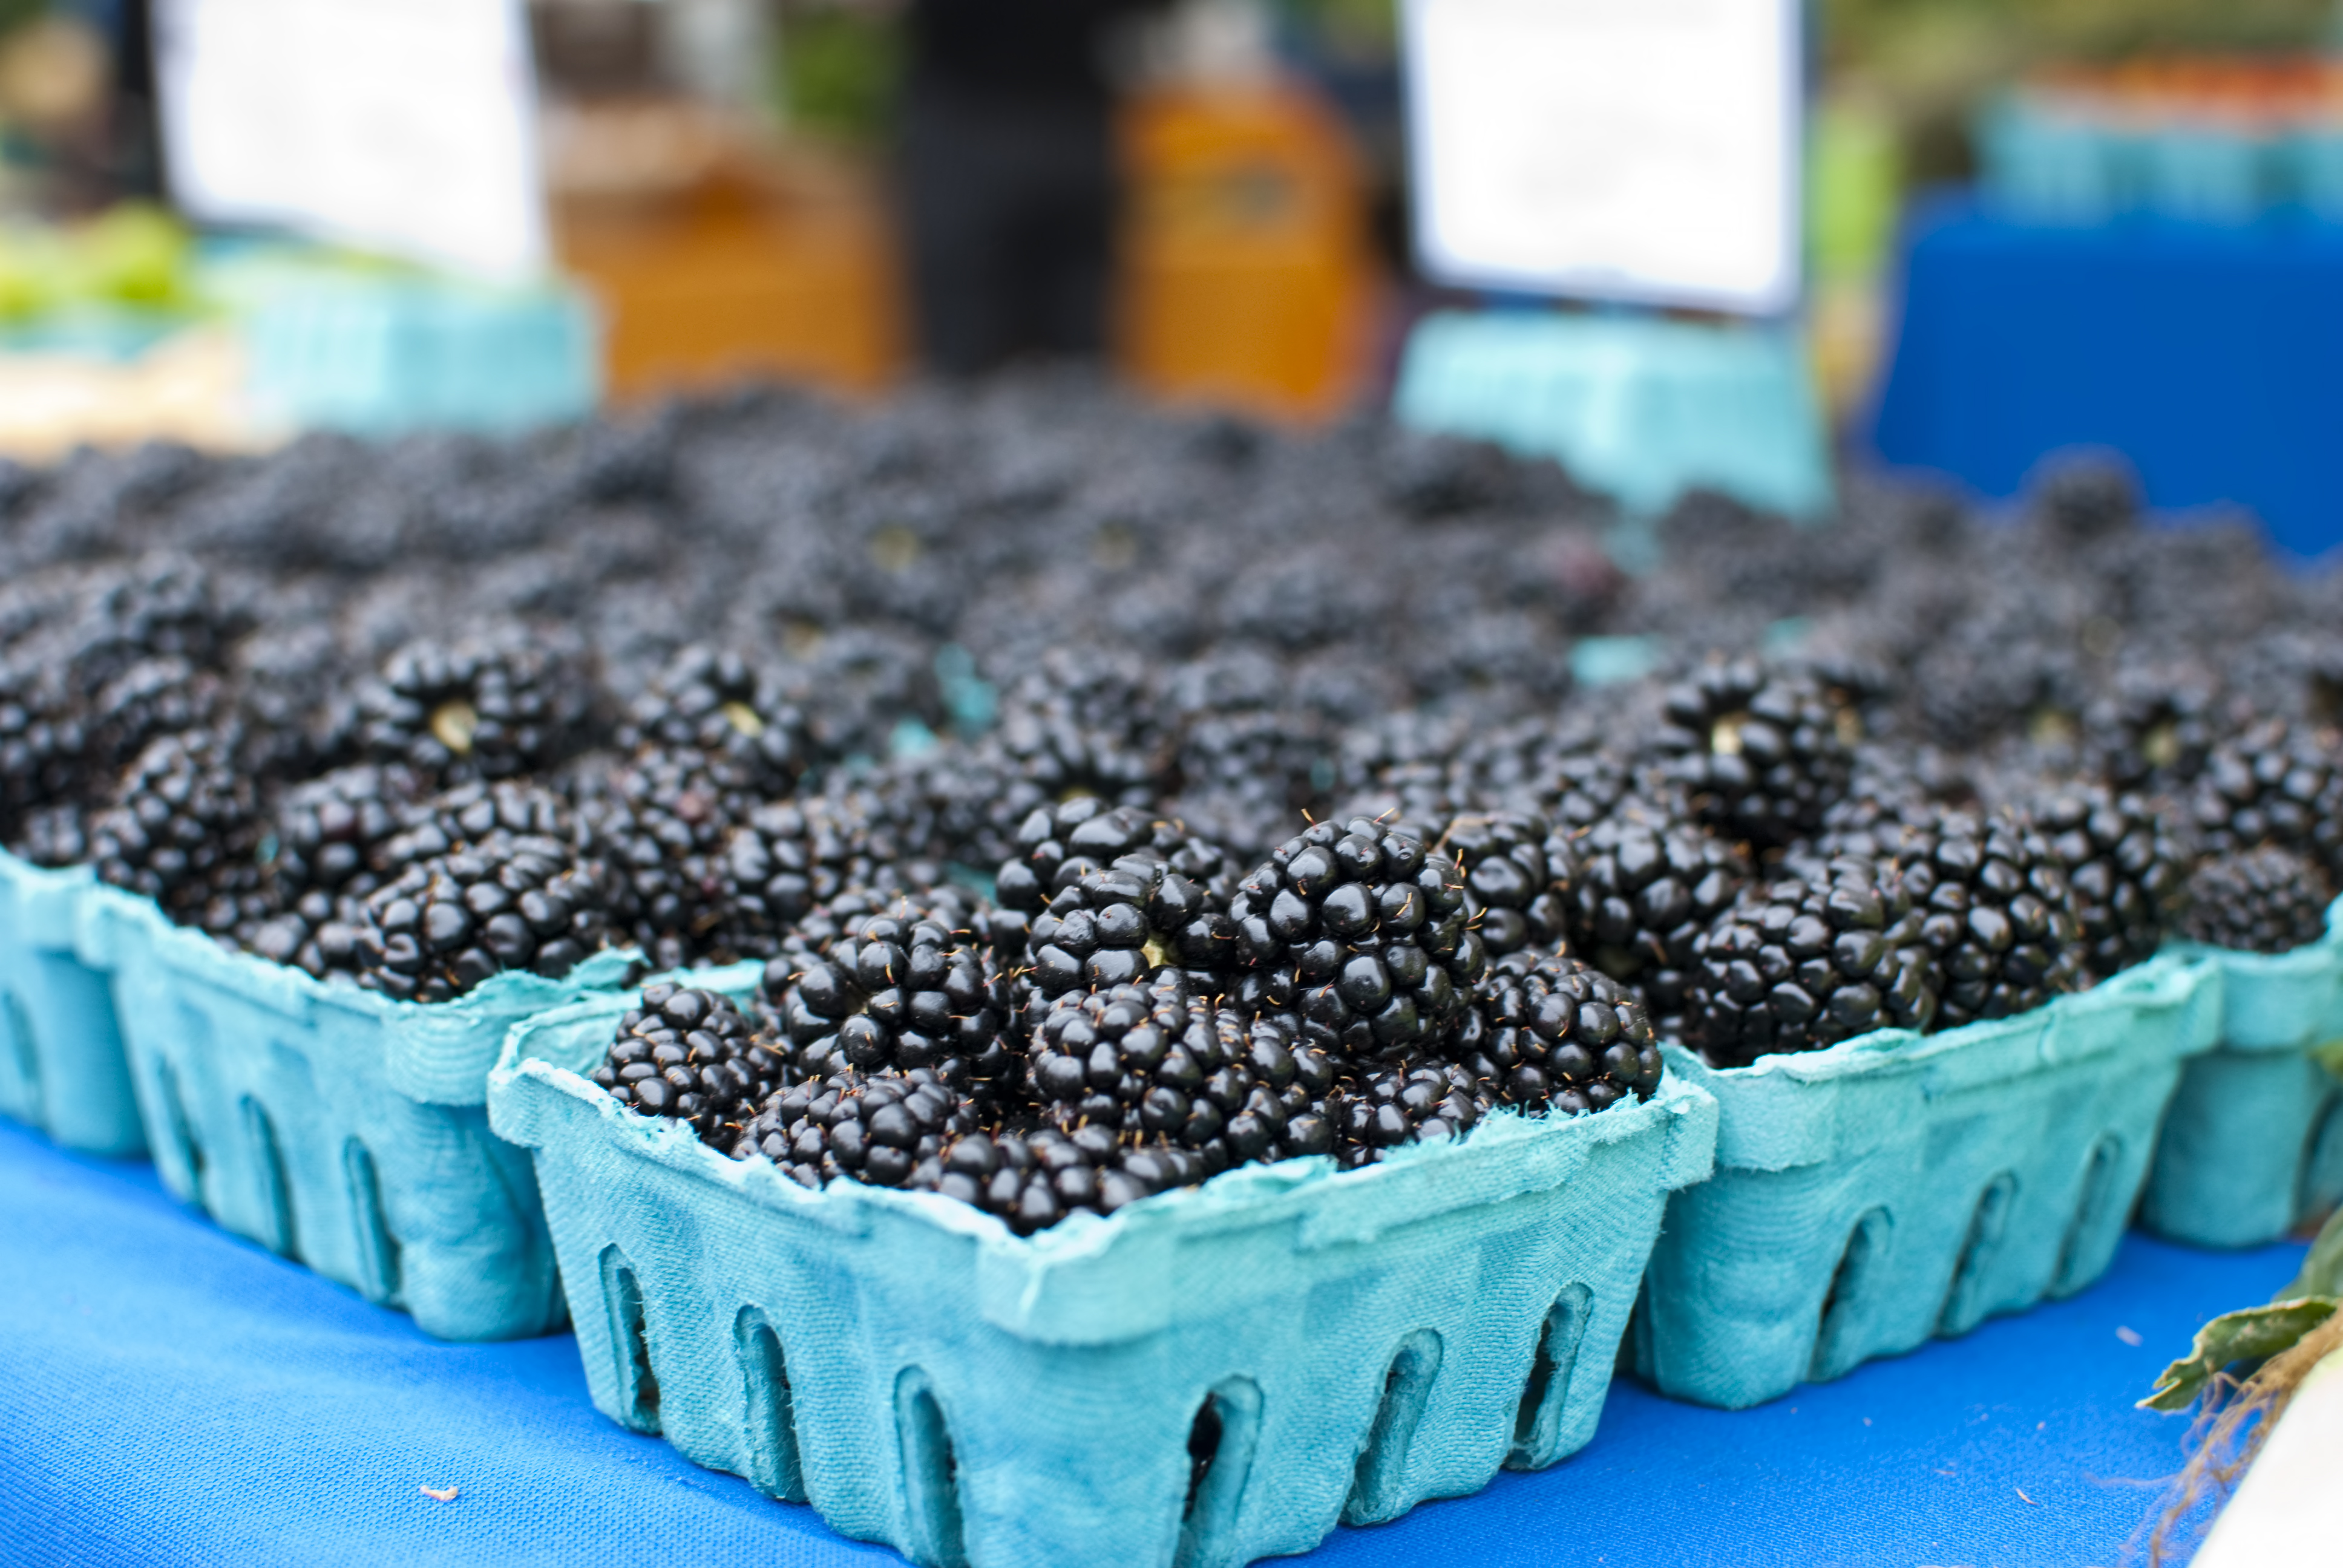 Blackberries, Corvallis Farmers Market